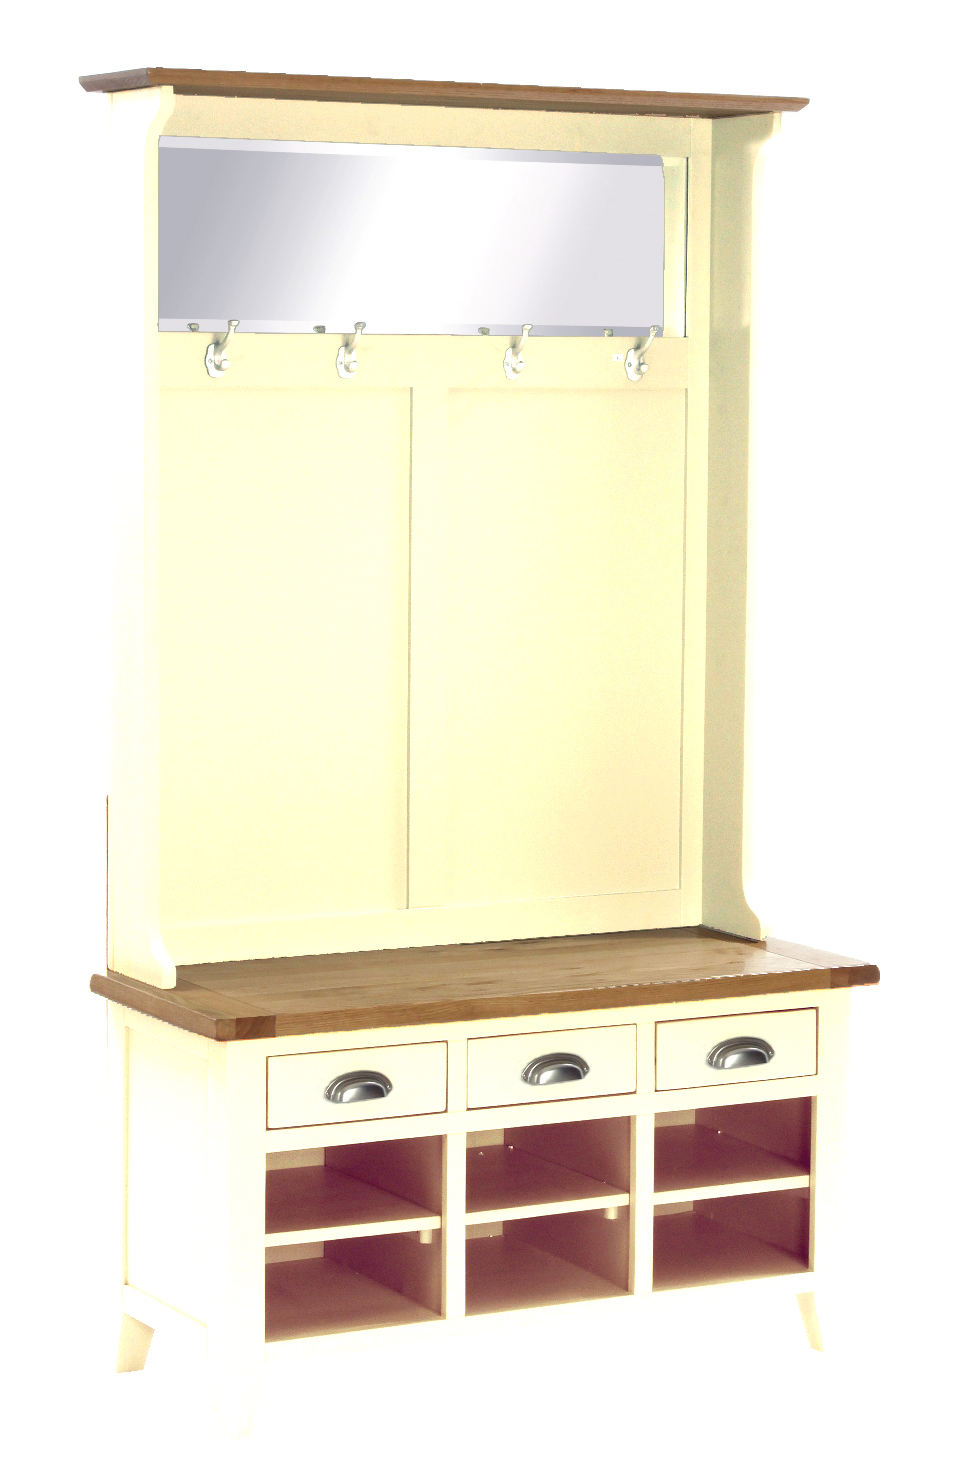 Hall Unit with Bench, Shoe Storage, Coat Rack and Mirror Colour-Ivory w 110 x d 45 x h 190 cm €840 Product Code: CANB115